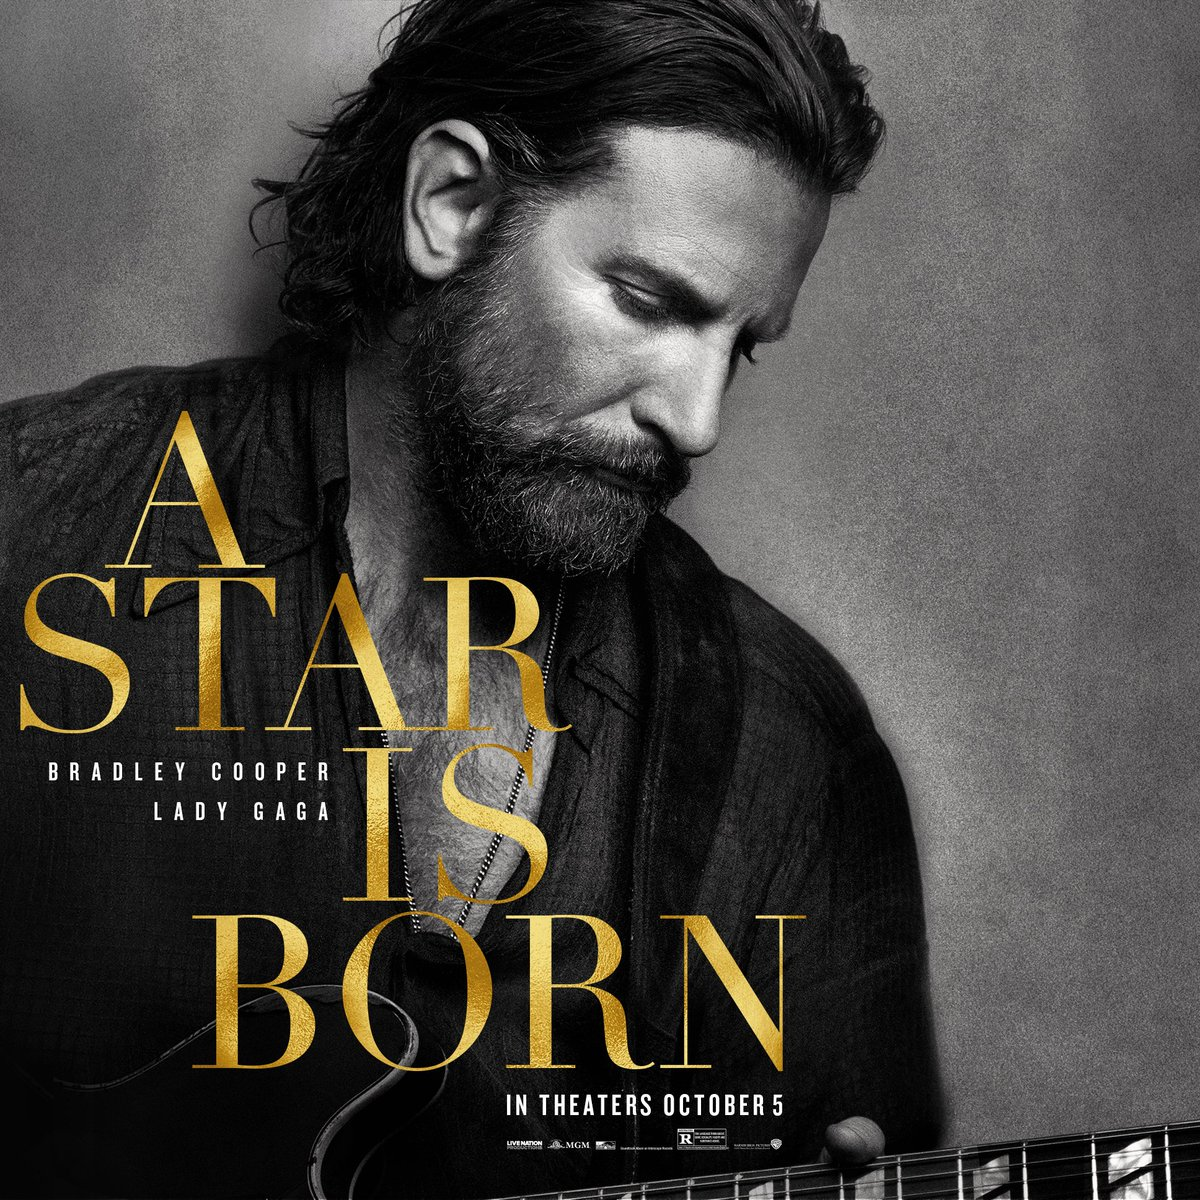 Lady Gaga unrecognizable in 'A Star Is Born' trailer with Bradley Cooper